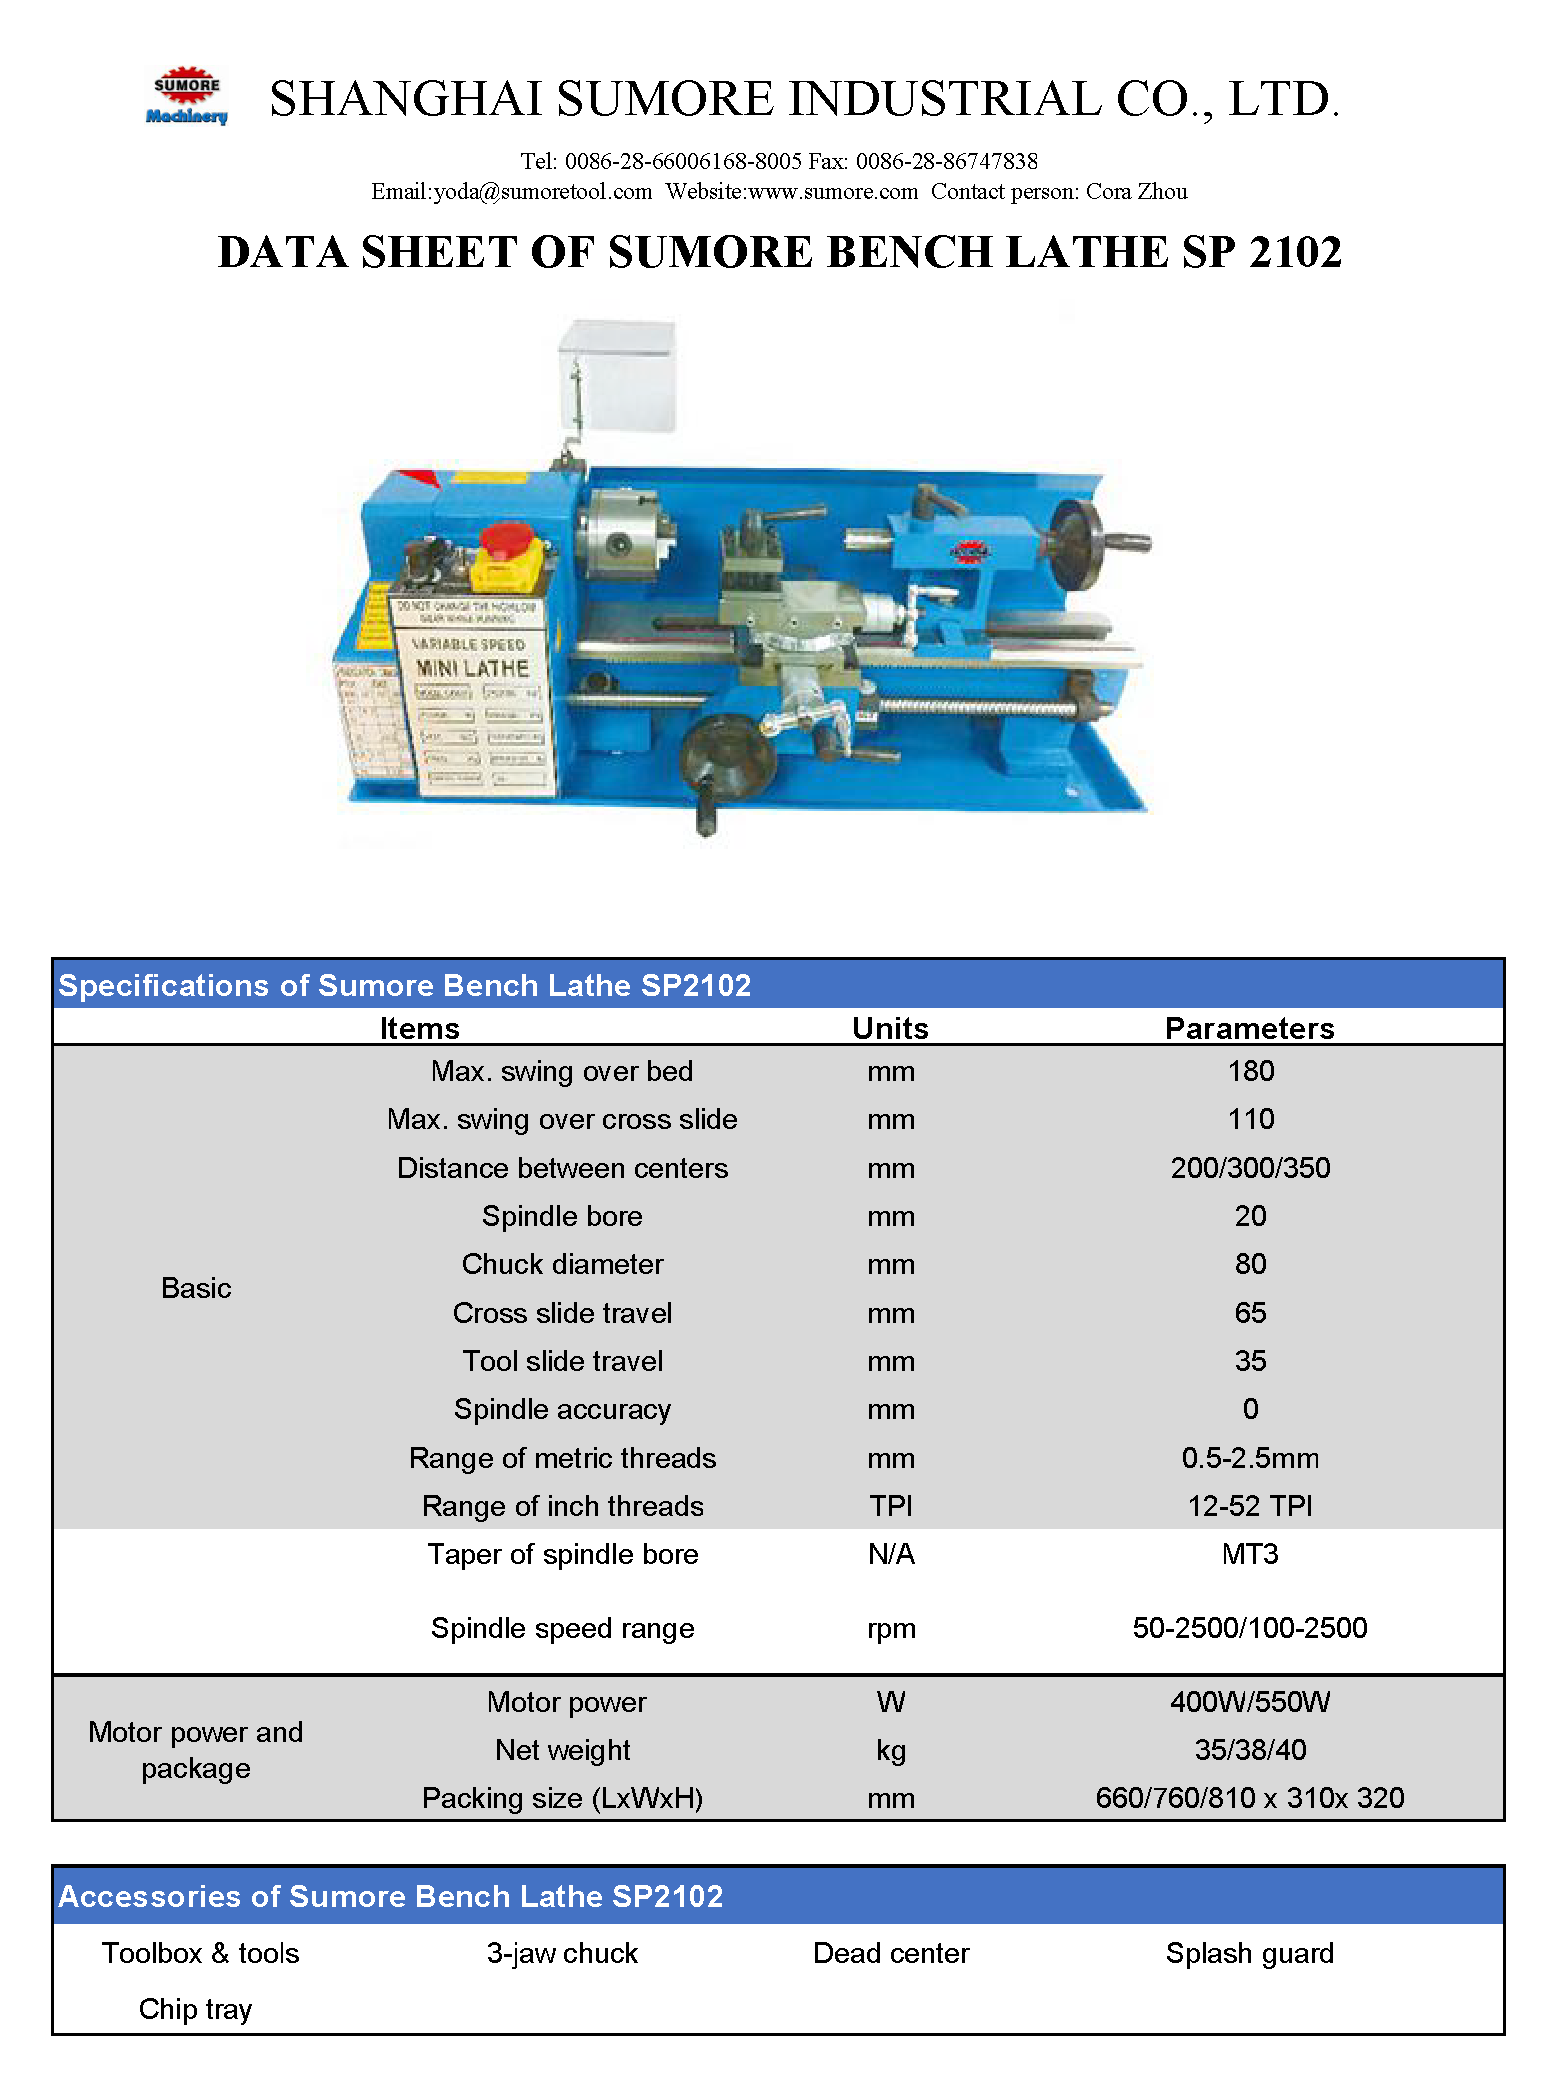 Image showing Shanghai Sunmore SP2102 Mini Bench Lathe Specifications